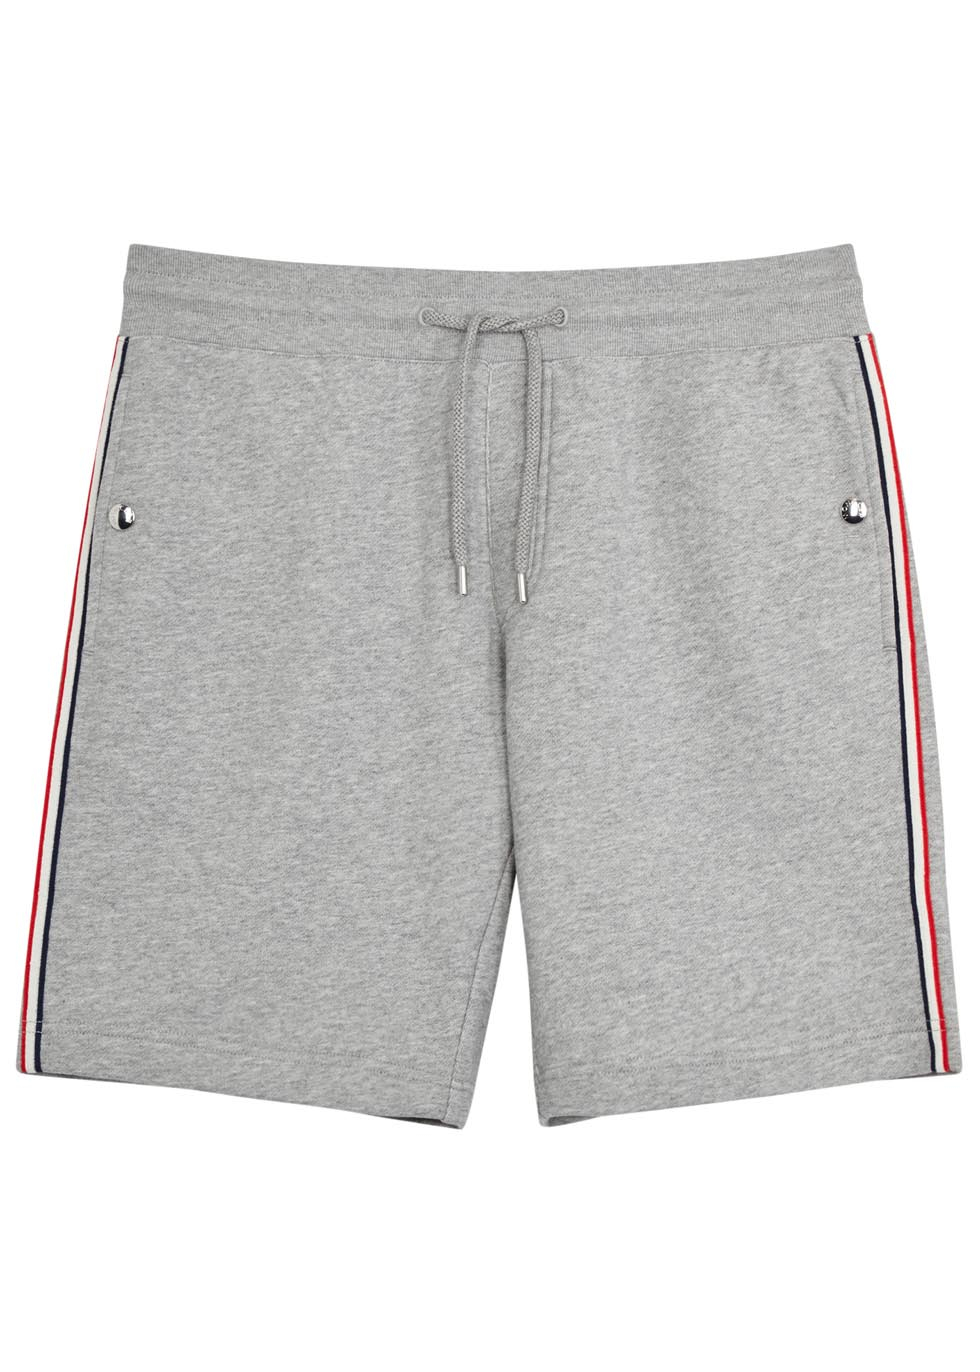 7a02389a940d Moncler Grey Cotton Jersey Shorts in Gray for Men - Lyst